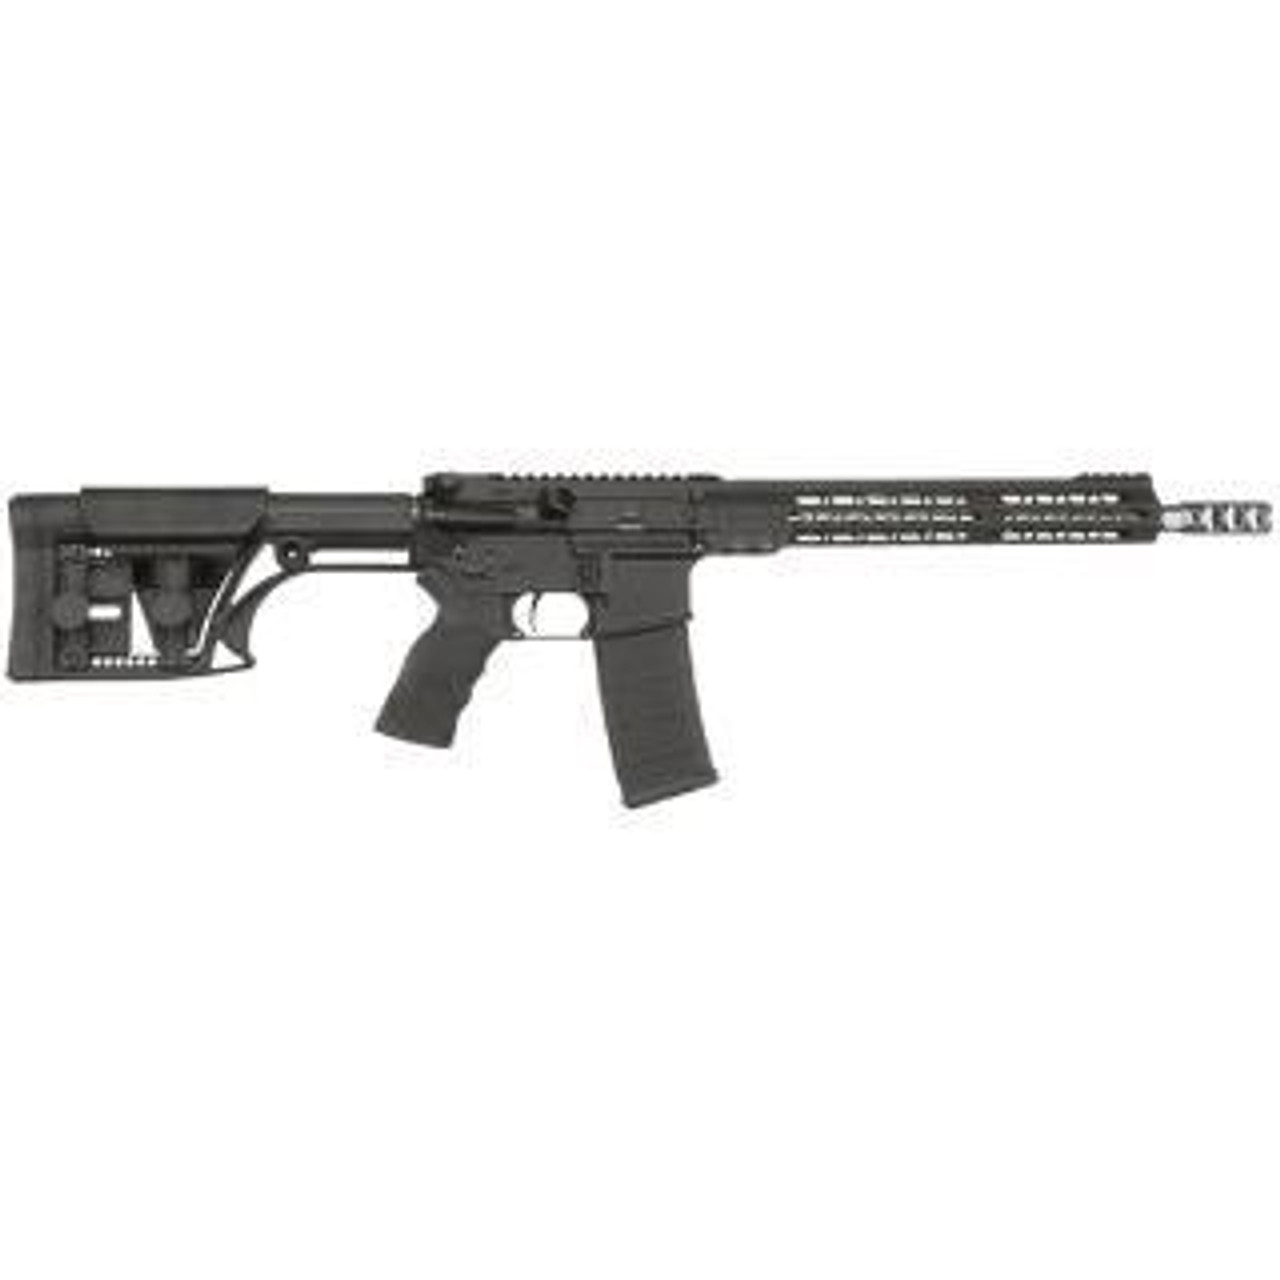 "Armalite M15 ""3 Gun"" 13.5 in Barrel CALIFORNIA LEGAL - .223/5.56"